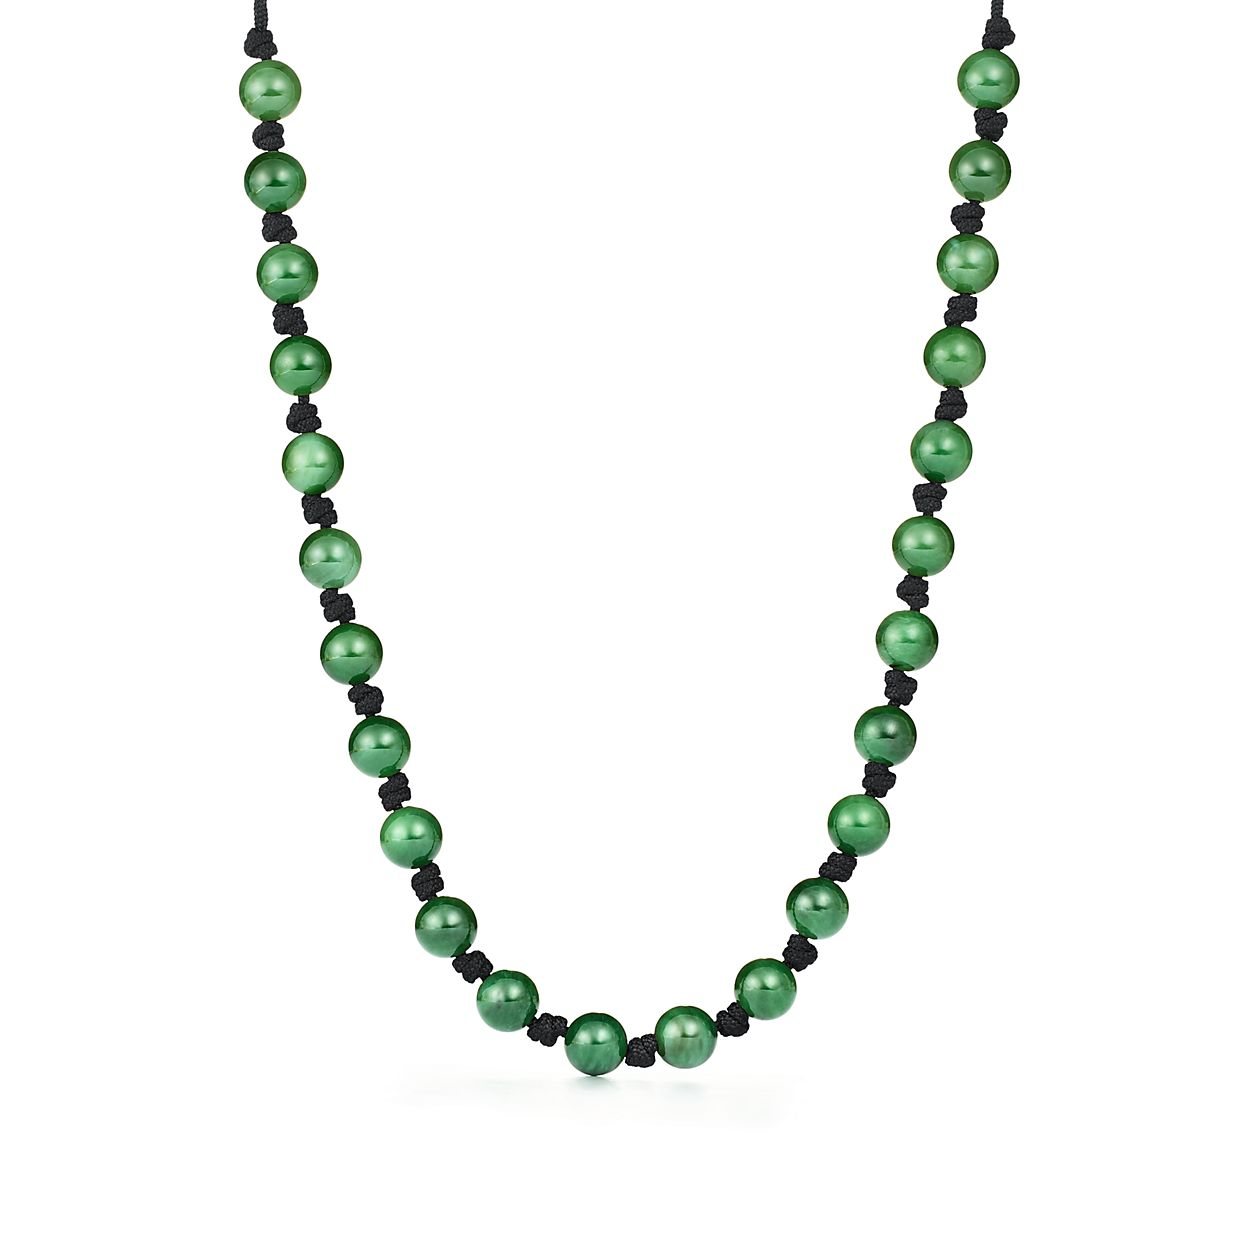 products green ooak luna necklace lili jade jewelry necklaces greenjade diamond